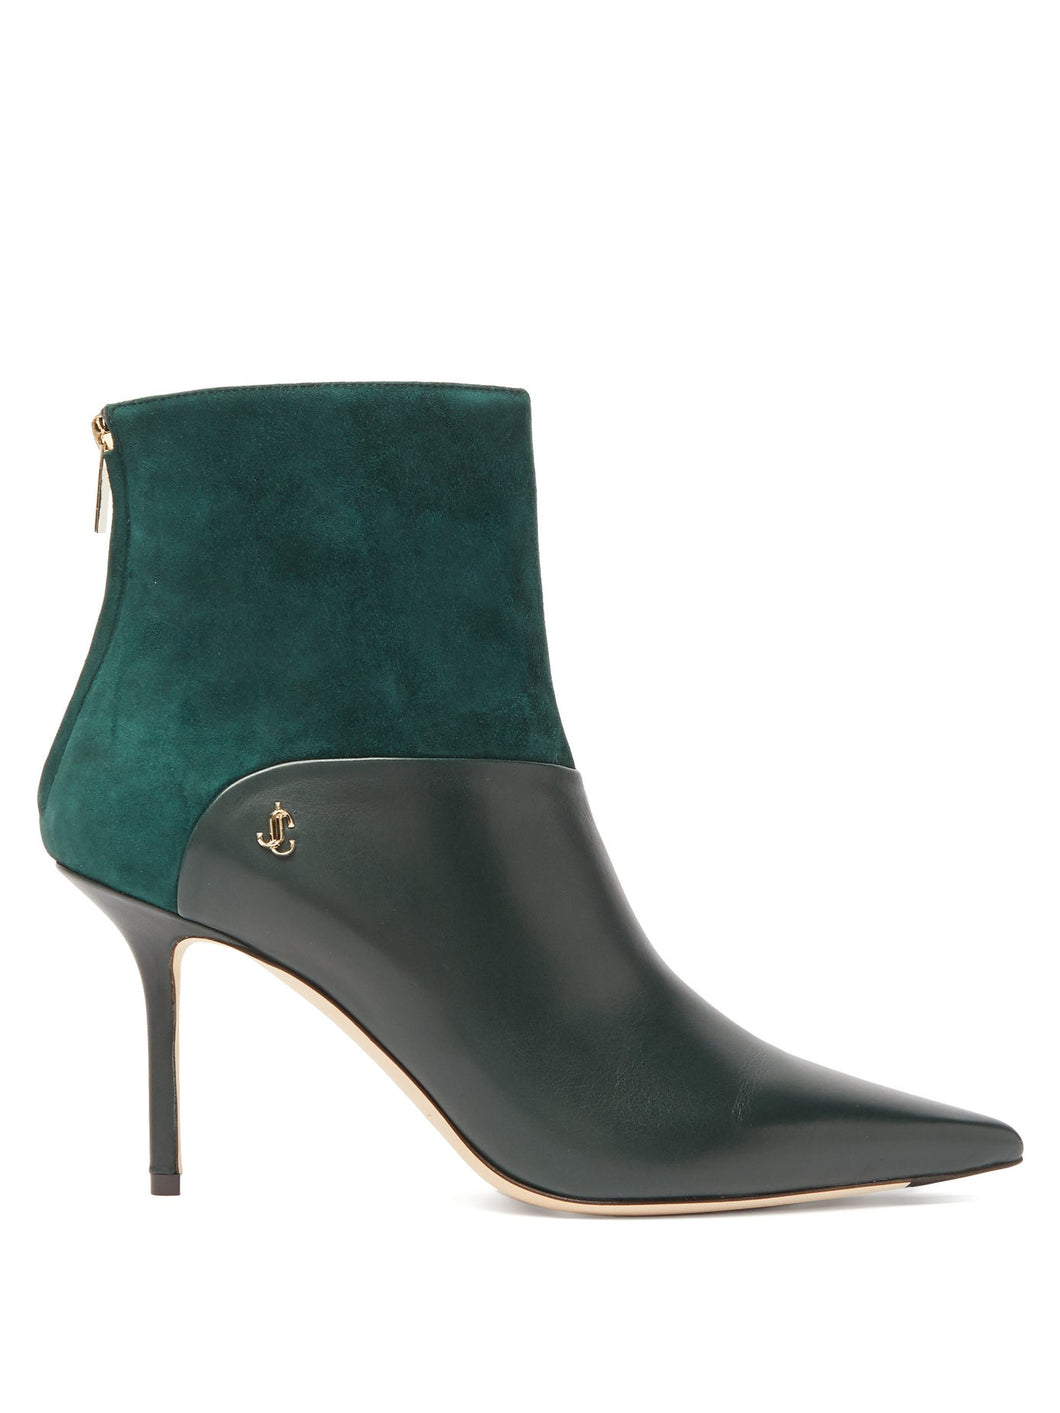 Beyla 85 leather and suede ankle boots